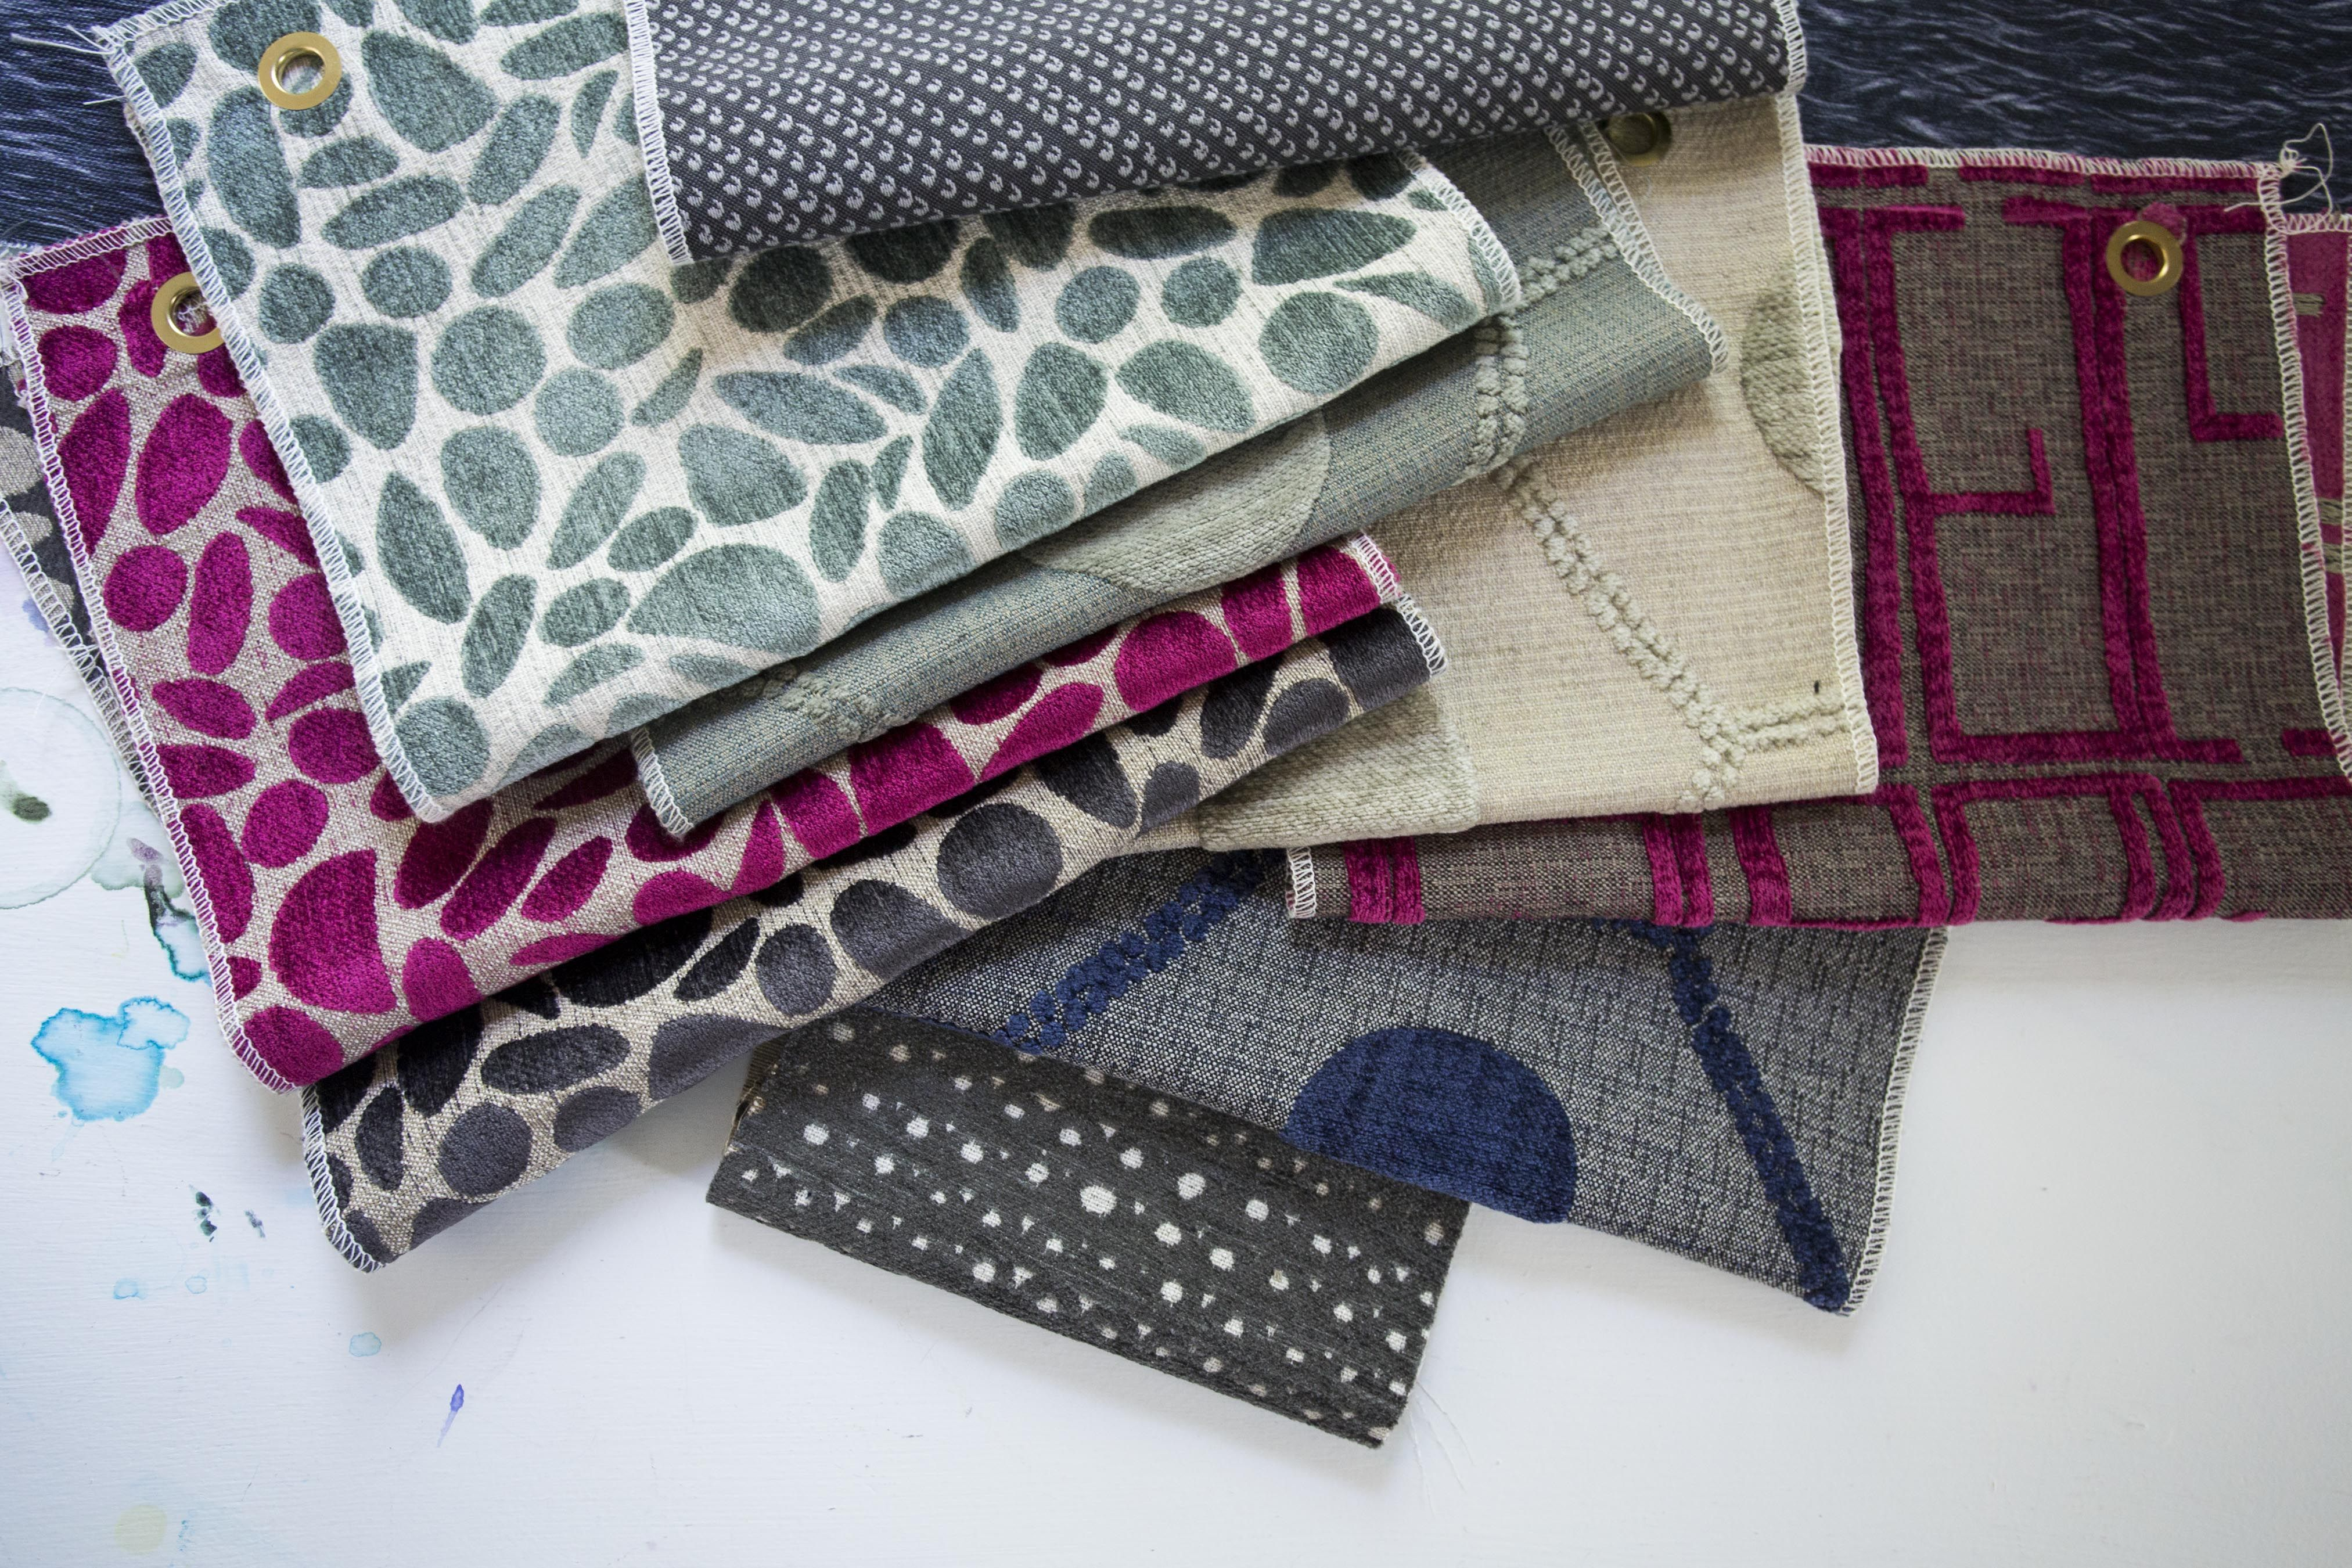 Exclusive Hable Construction fabrics for Hickory Chair. www.hickorychair.com